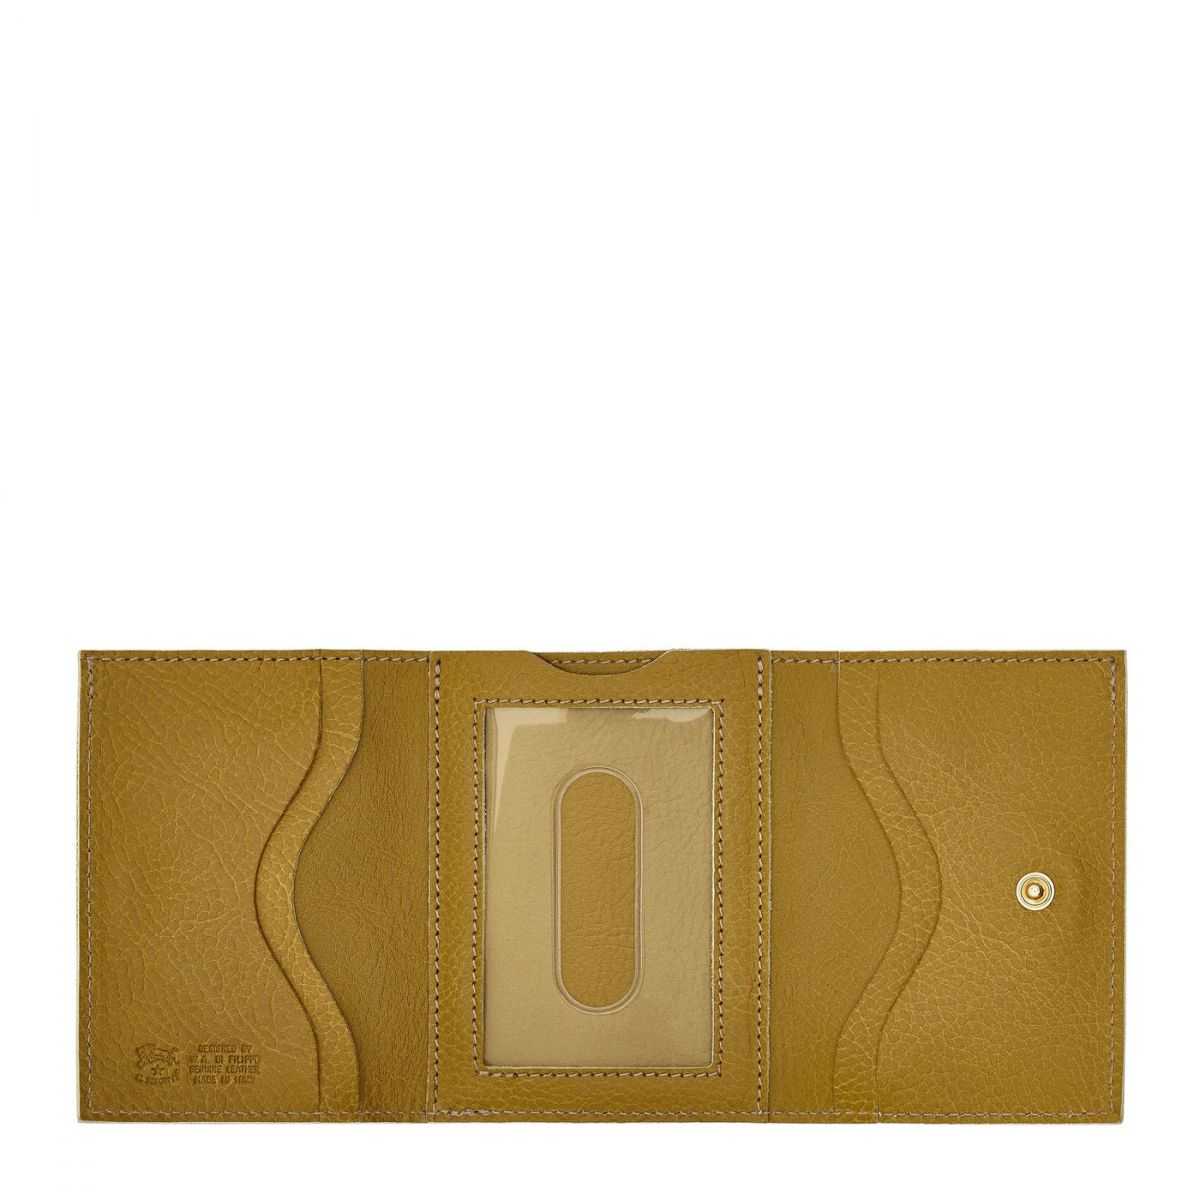 Wallet in Cowhide Leather SMW036 color Curry | Details